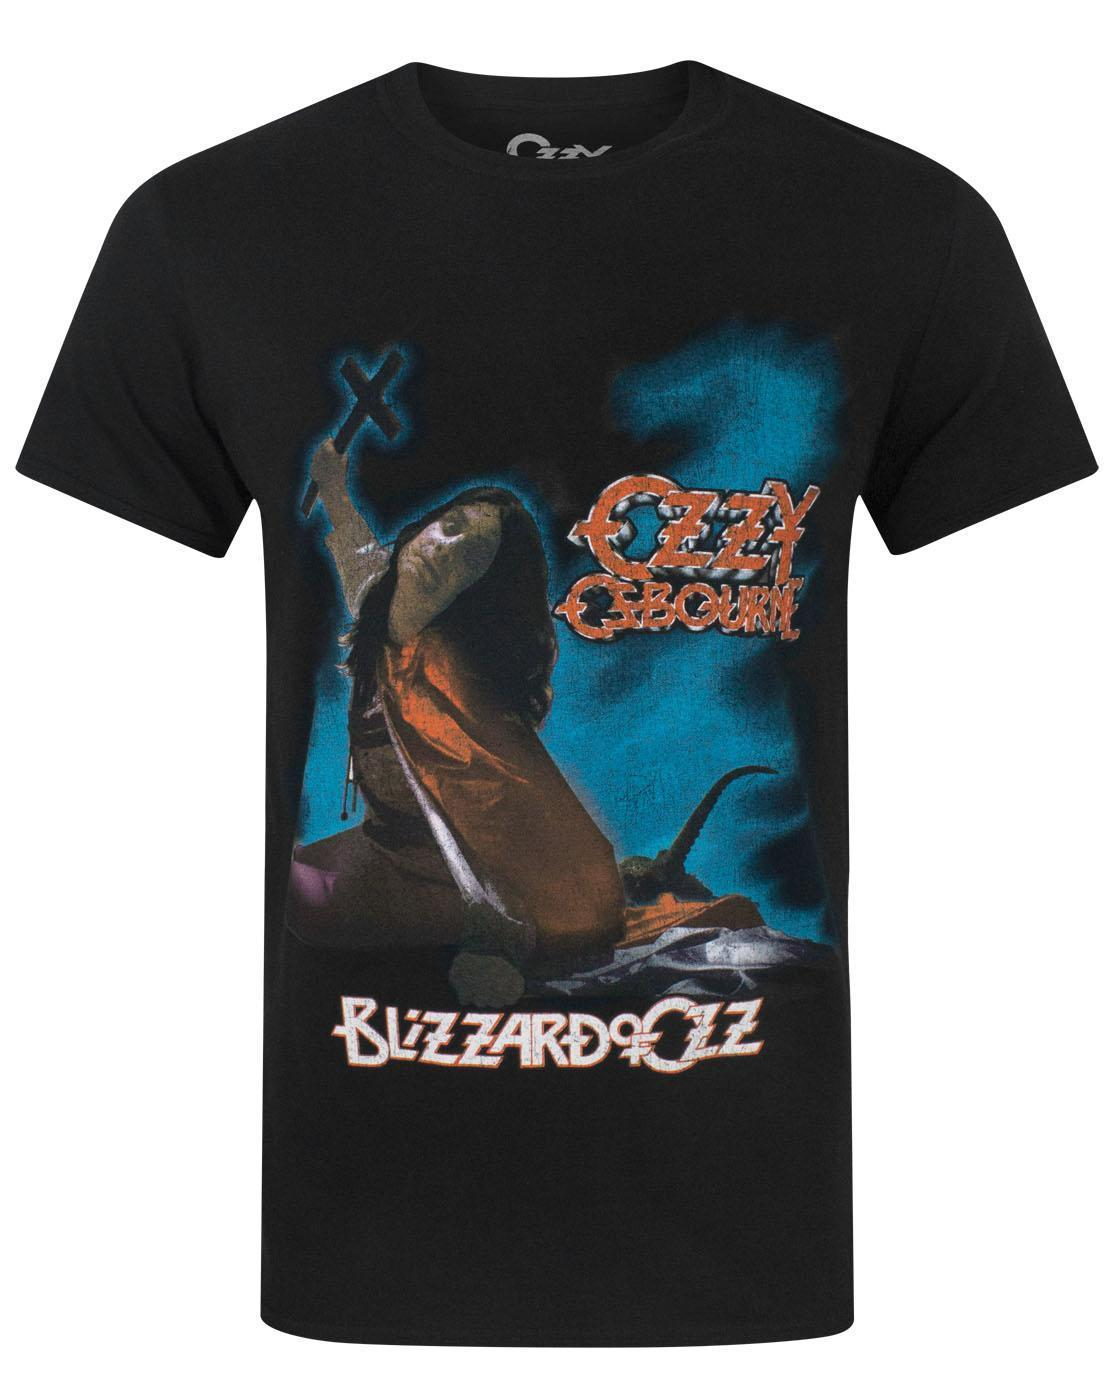 Ozzy Osbourne Blizzard Of Oz Mens T-Shirt